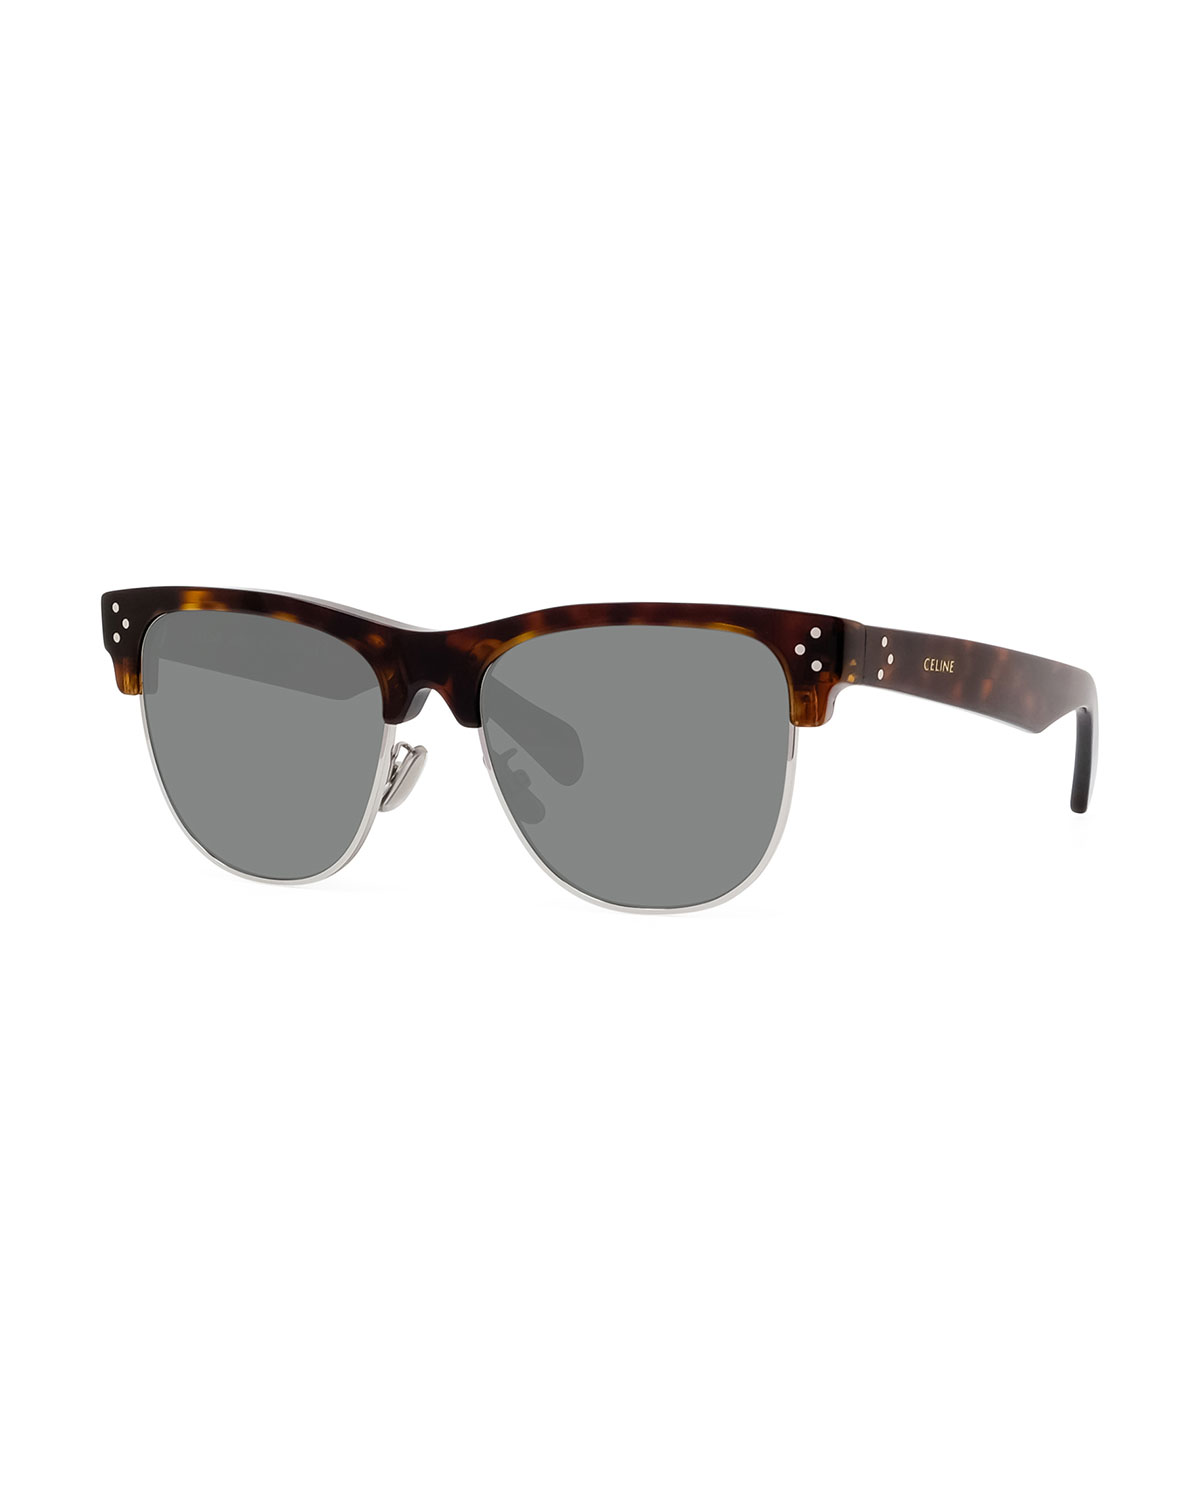 Celine Sunglasses MEN'S STUDDED HAVANA HALF-RIM SUNGLASSES